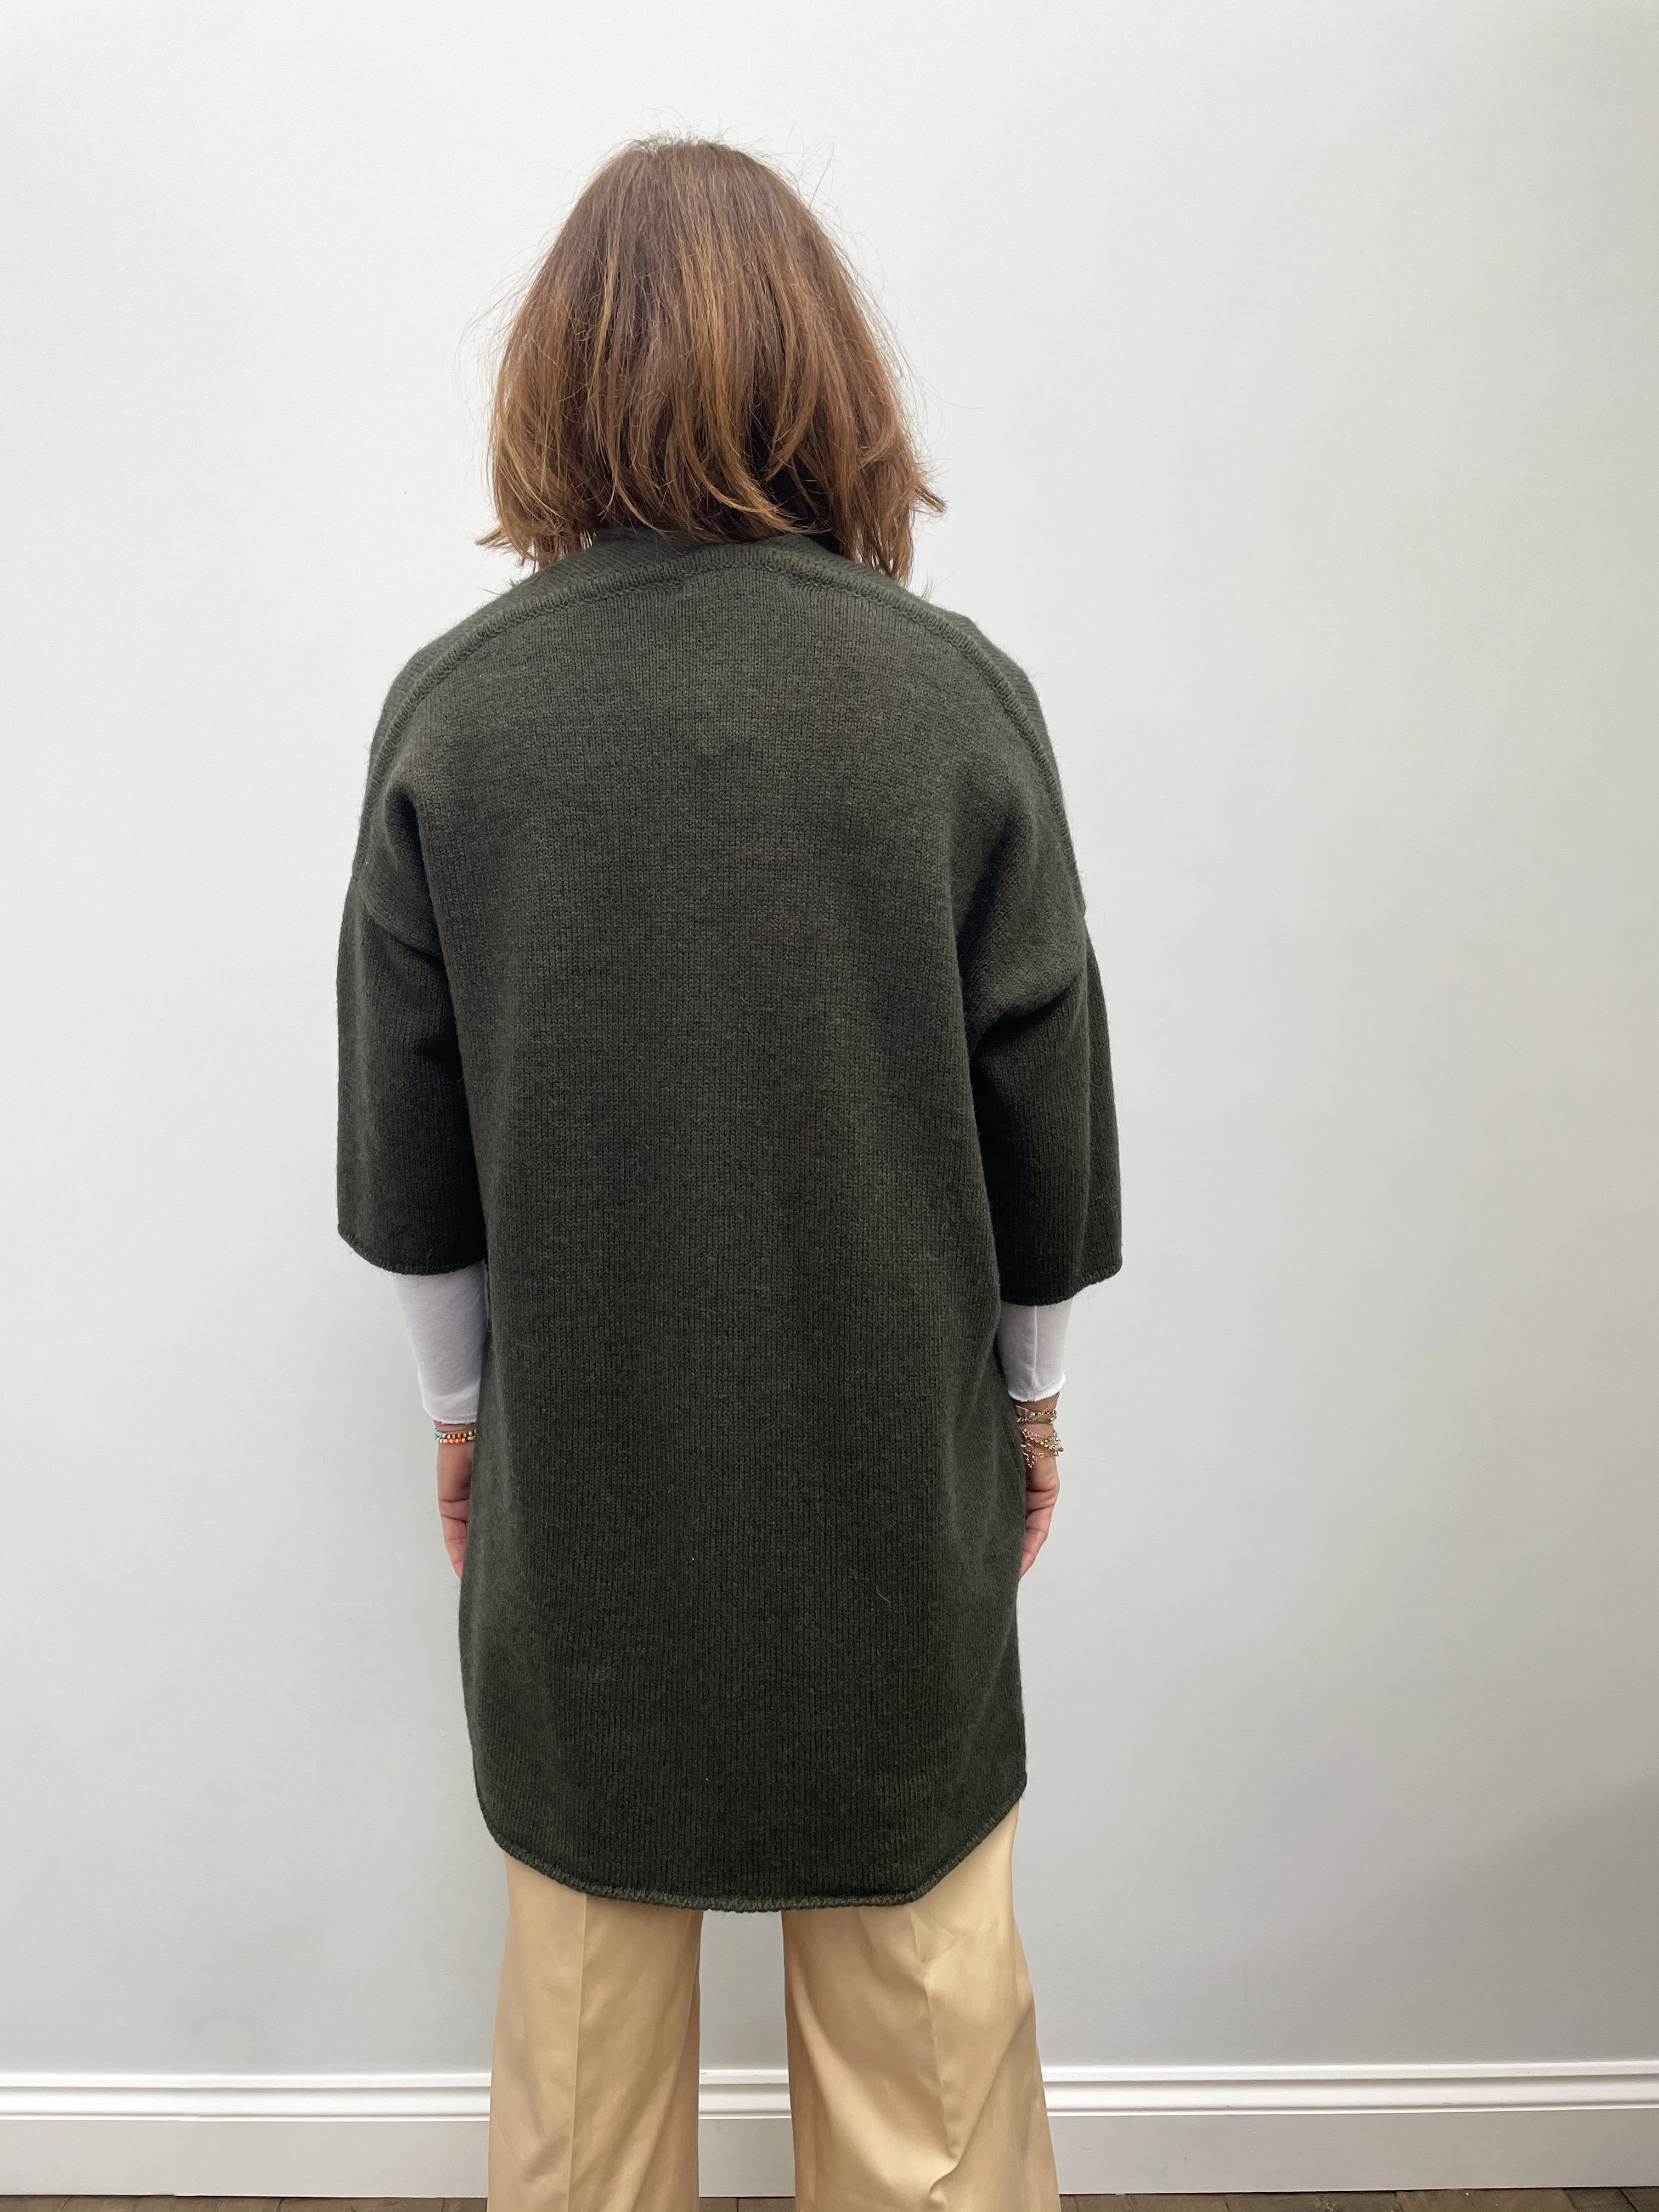 SIBIN Cali knit cardi in army green